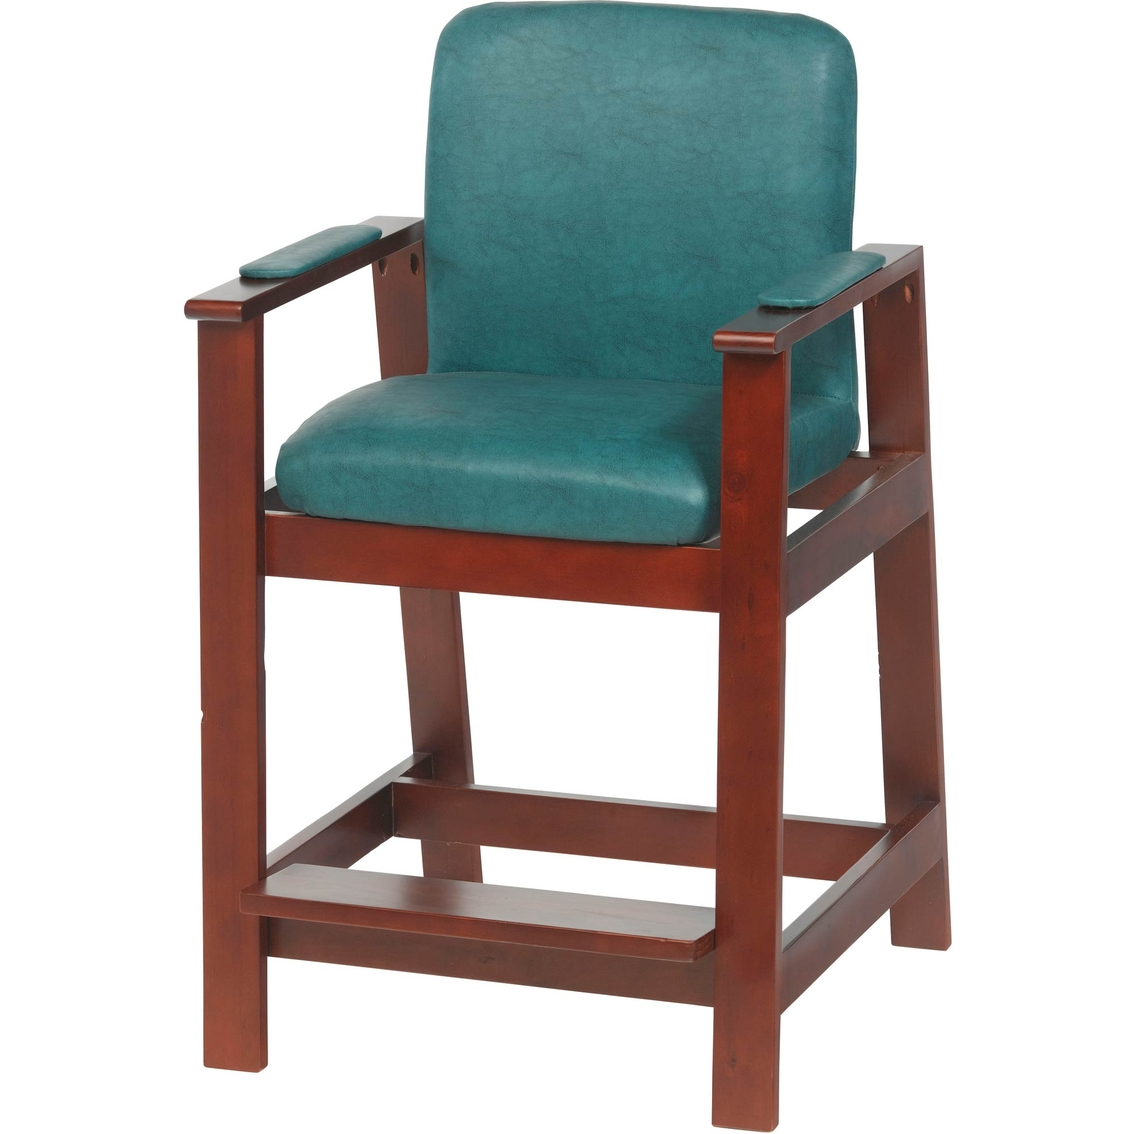 high lift chair office ikea drive medical wooden hip chairs beauty